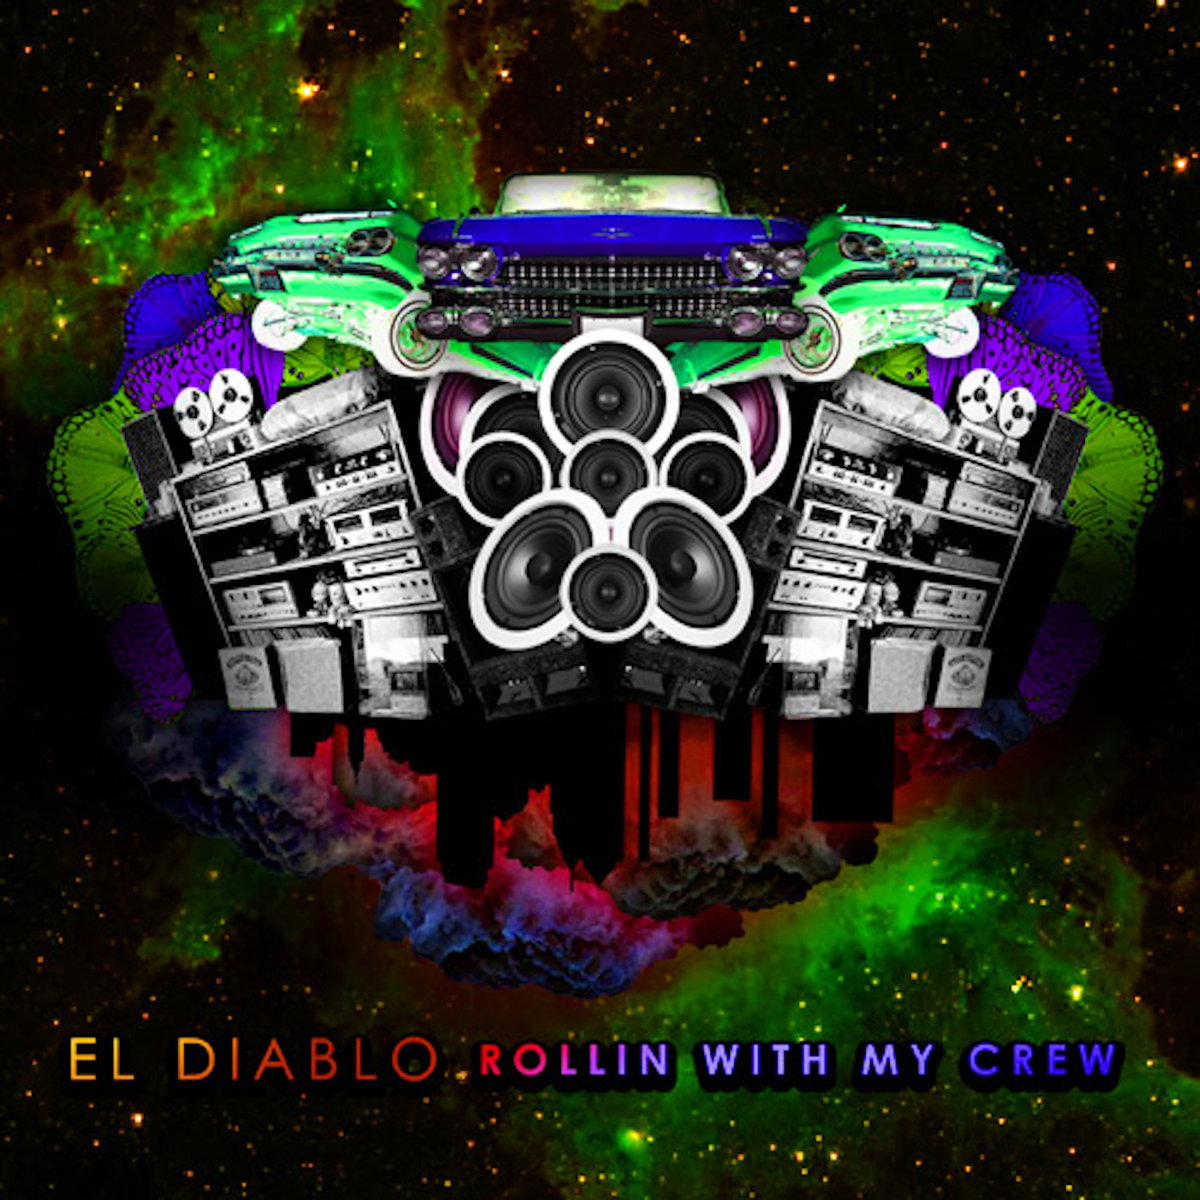 El Diablo feat. Mal Irie - Rollin With My Crew (6Blocc Remix) @ 'Rollin With My Crew' album (electronic, dubstep)